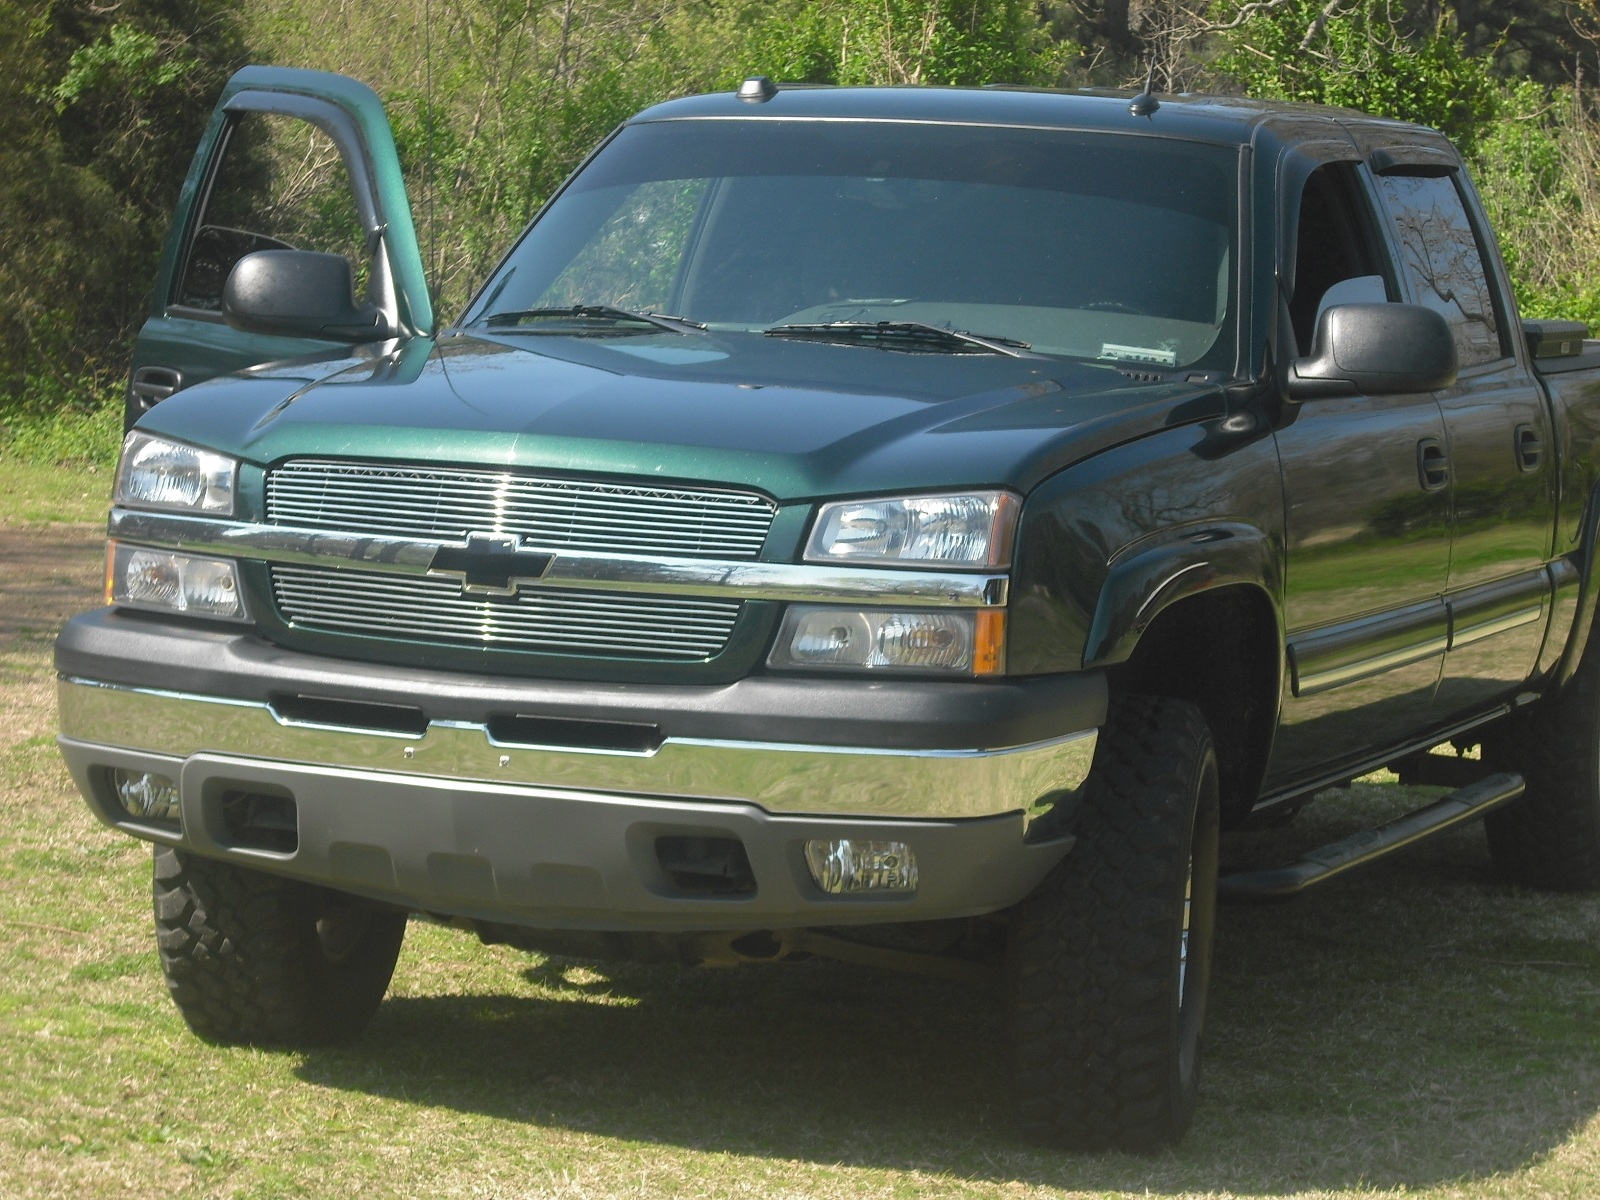 lah33 2005 chevrolet silverado 1500 regular cab specs photos modification info at cardomain. Black Bedroom Furniture Sets. Home Design Ideas